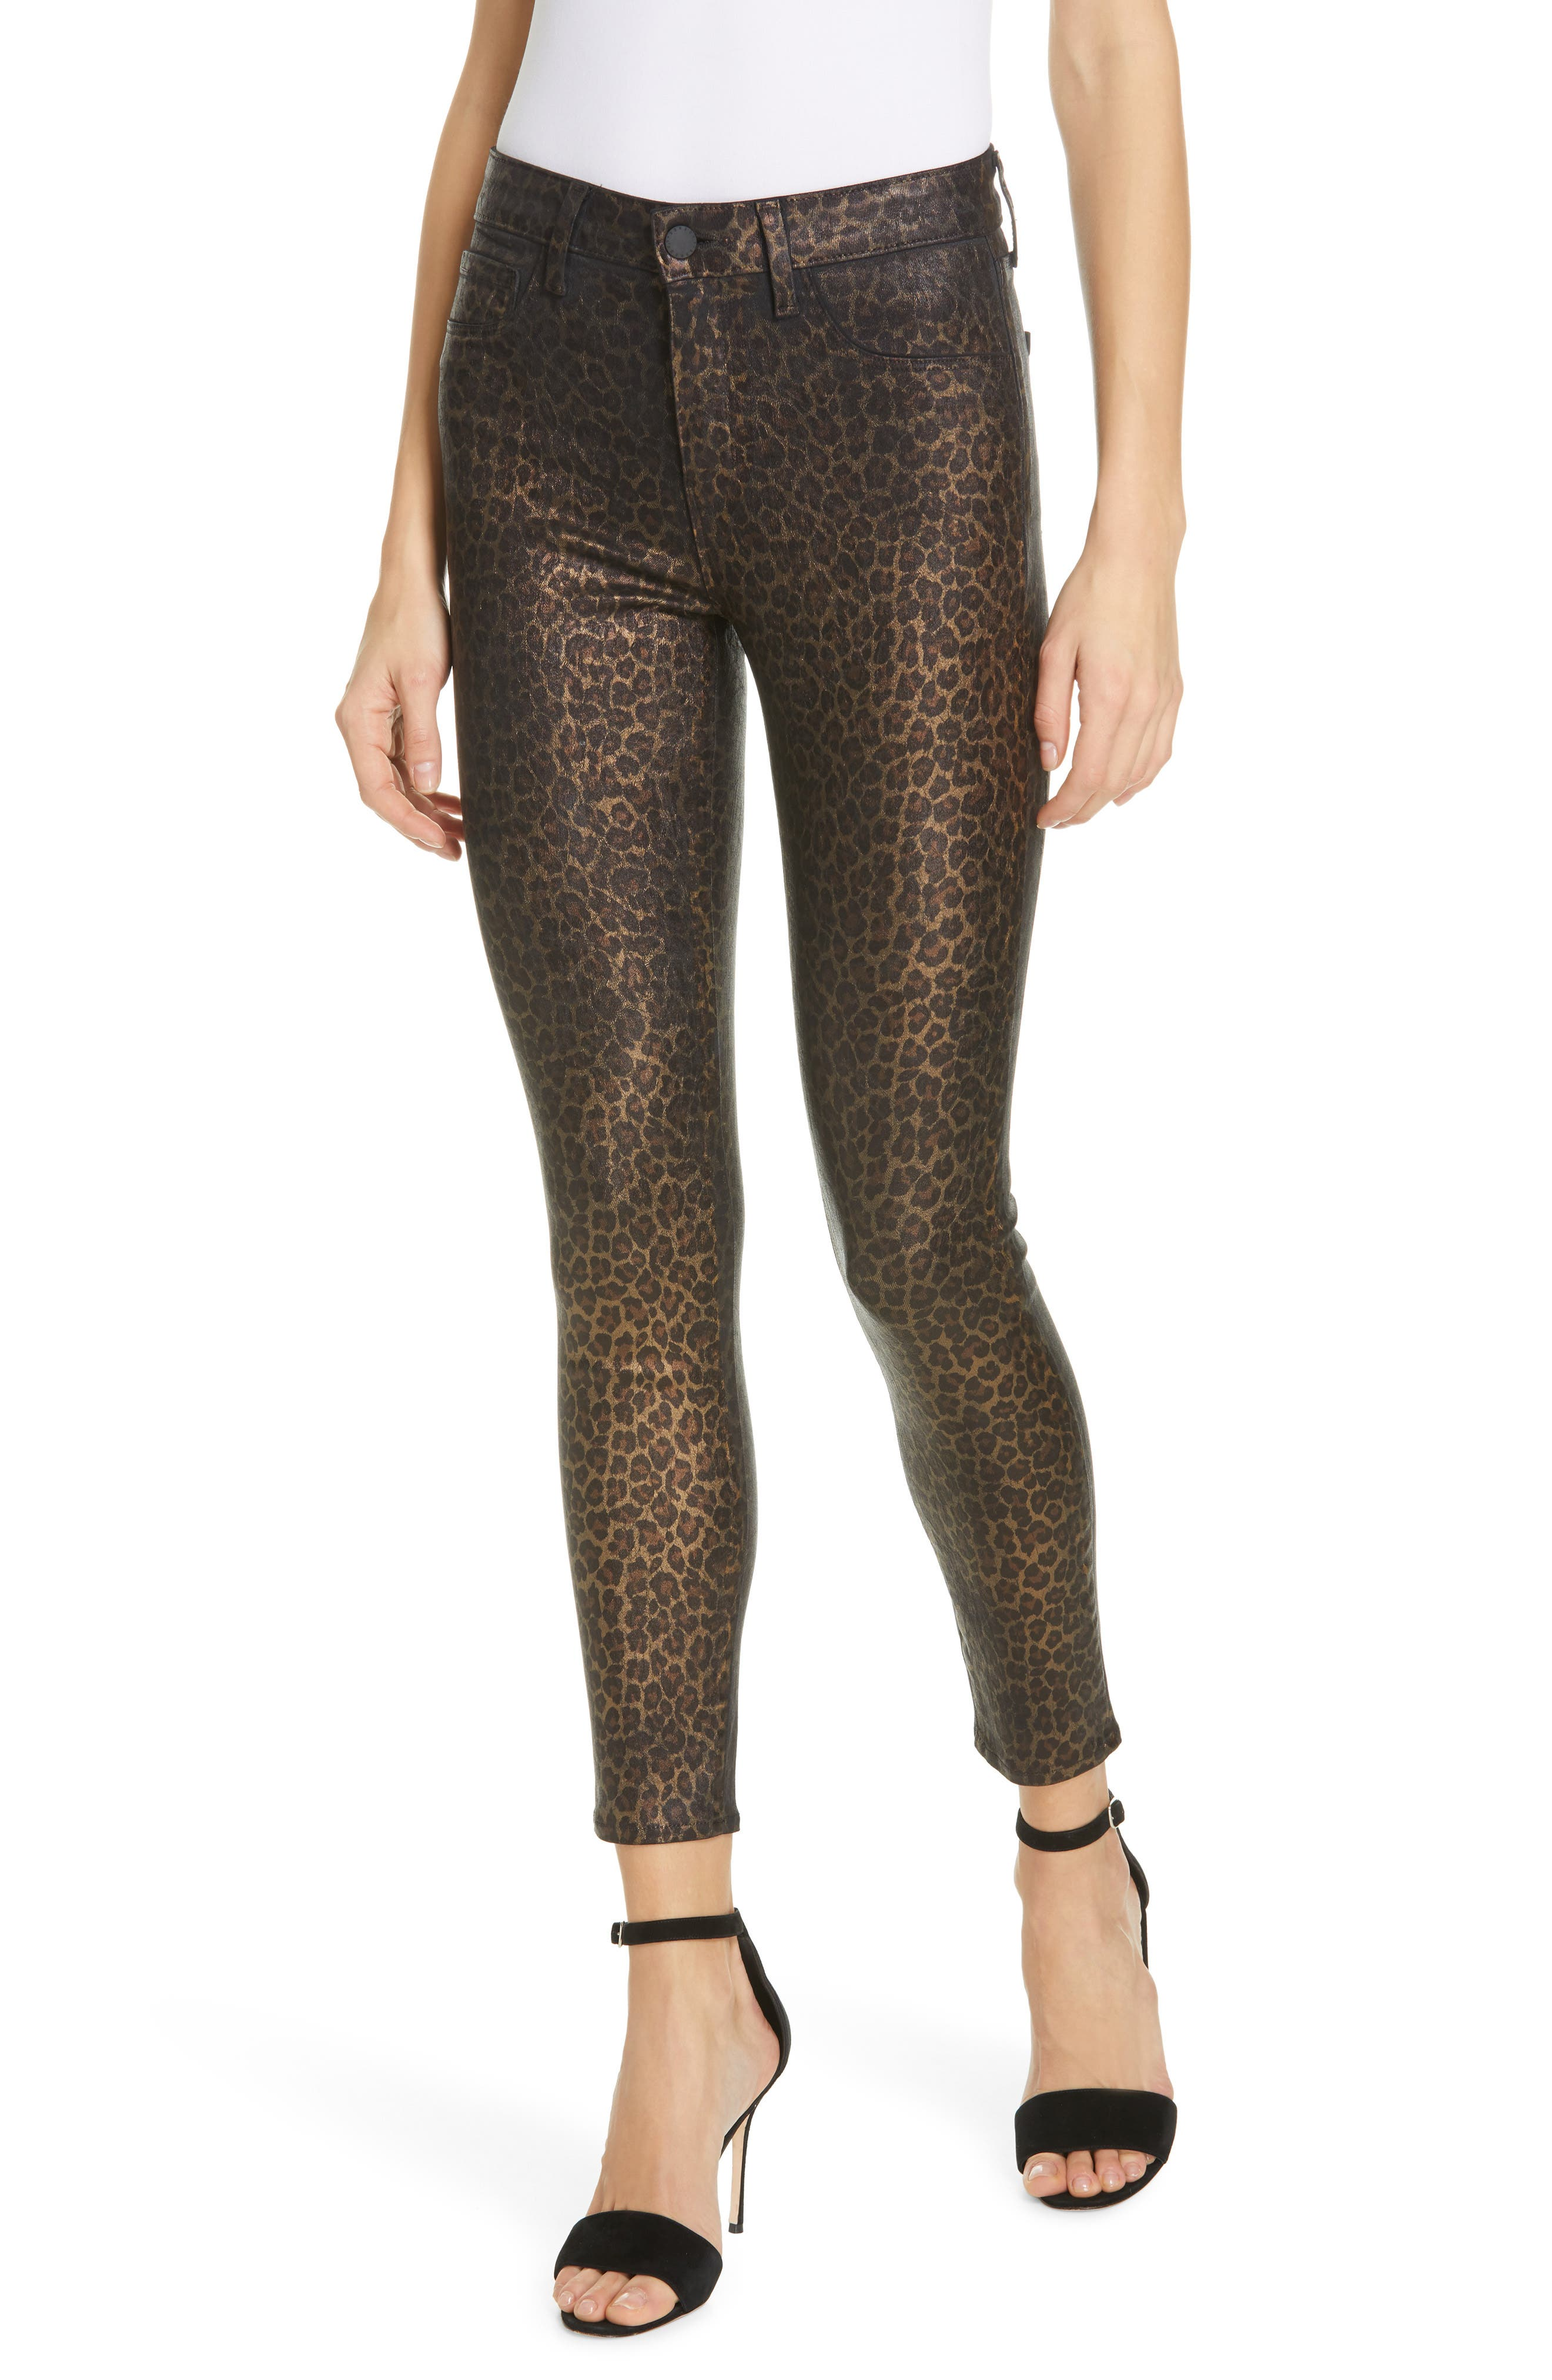 L'AGENCE Margot Metallic Coated Crop Skinny Jeans, Main, color, BLACK CHEETAH CRACKLE FOIL